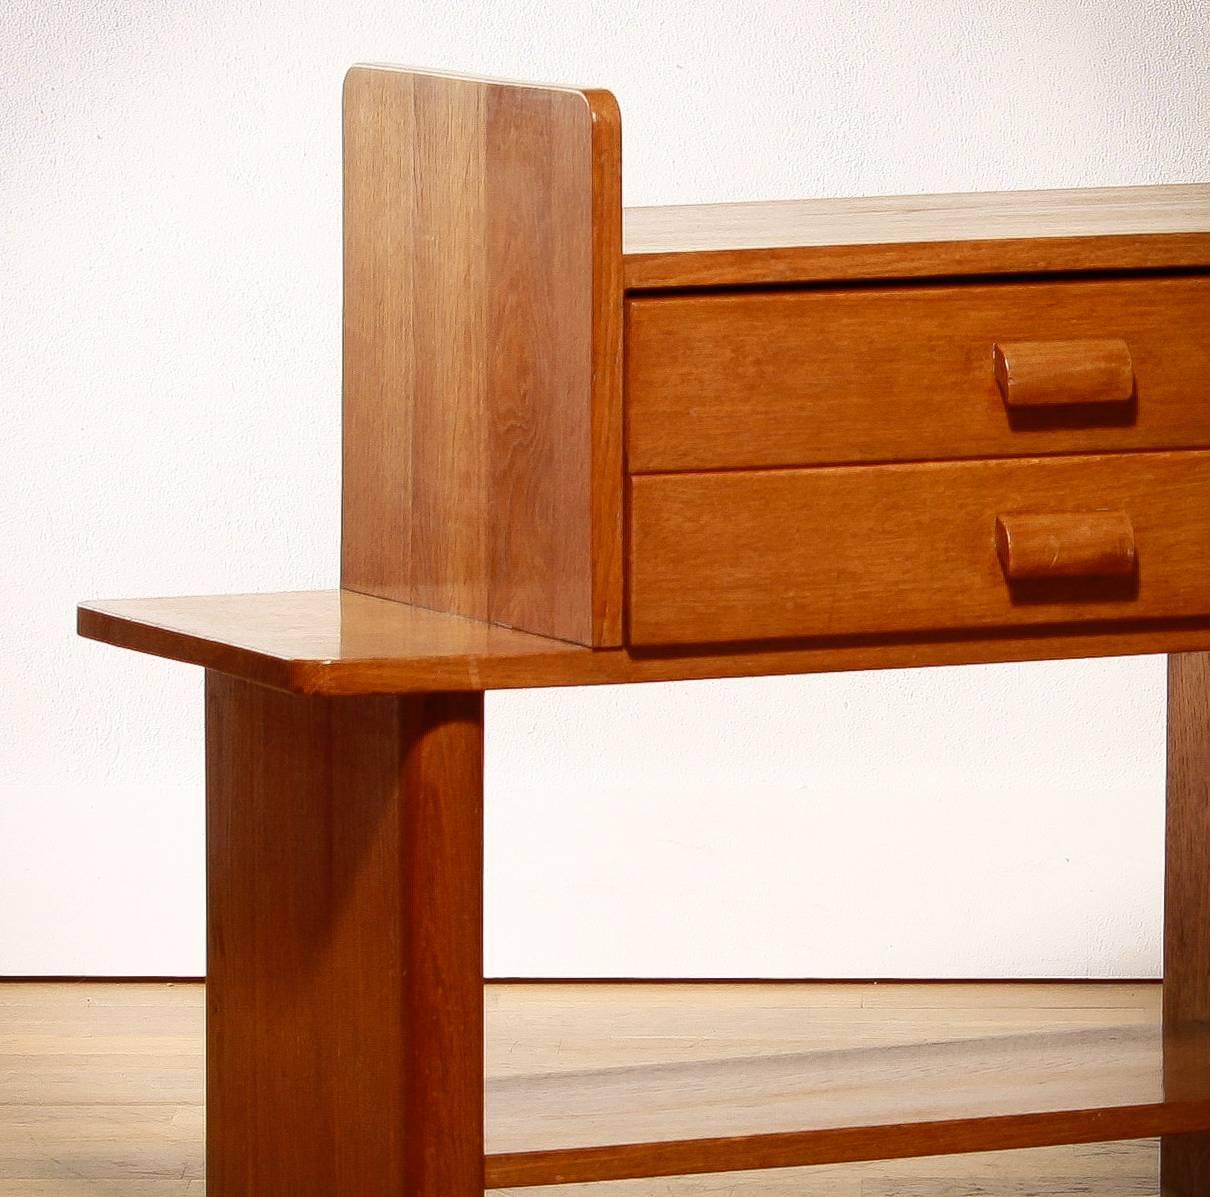 1950s Oak Bedside Table Or Drawer For Sale At 1stdibs. Full resolution‎  photo, nominally Width 1210 Height 1197 pixels, photo with #410F03.